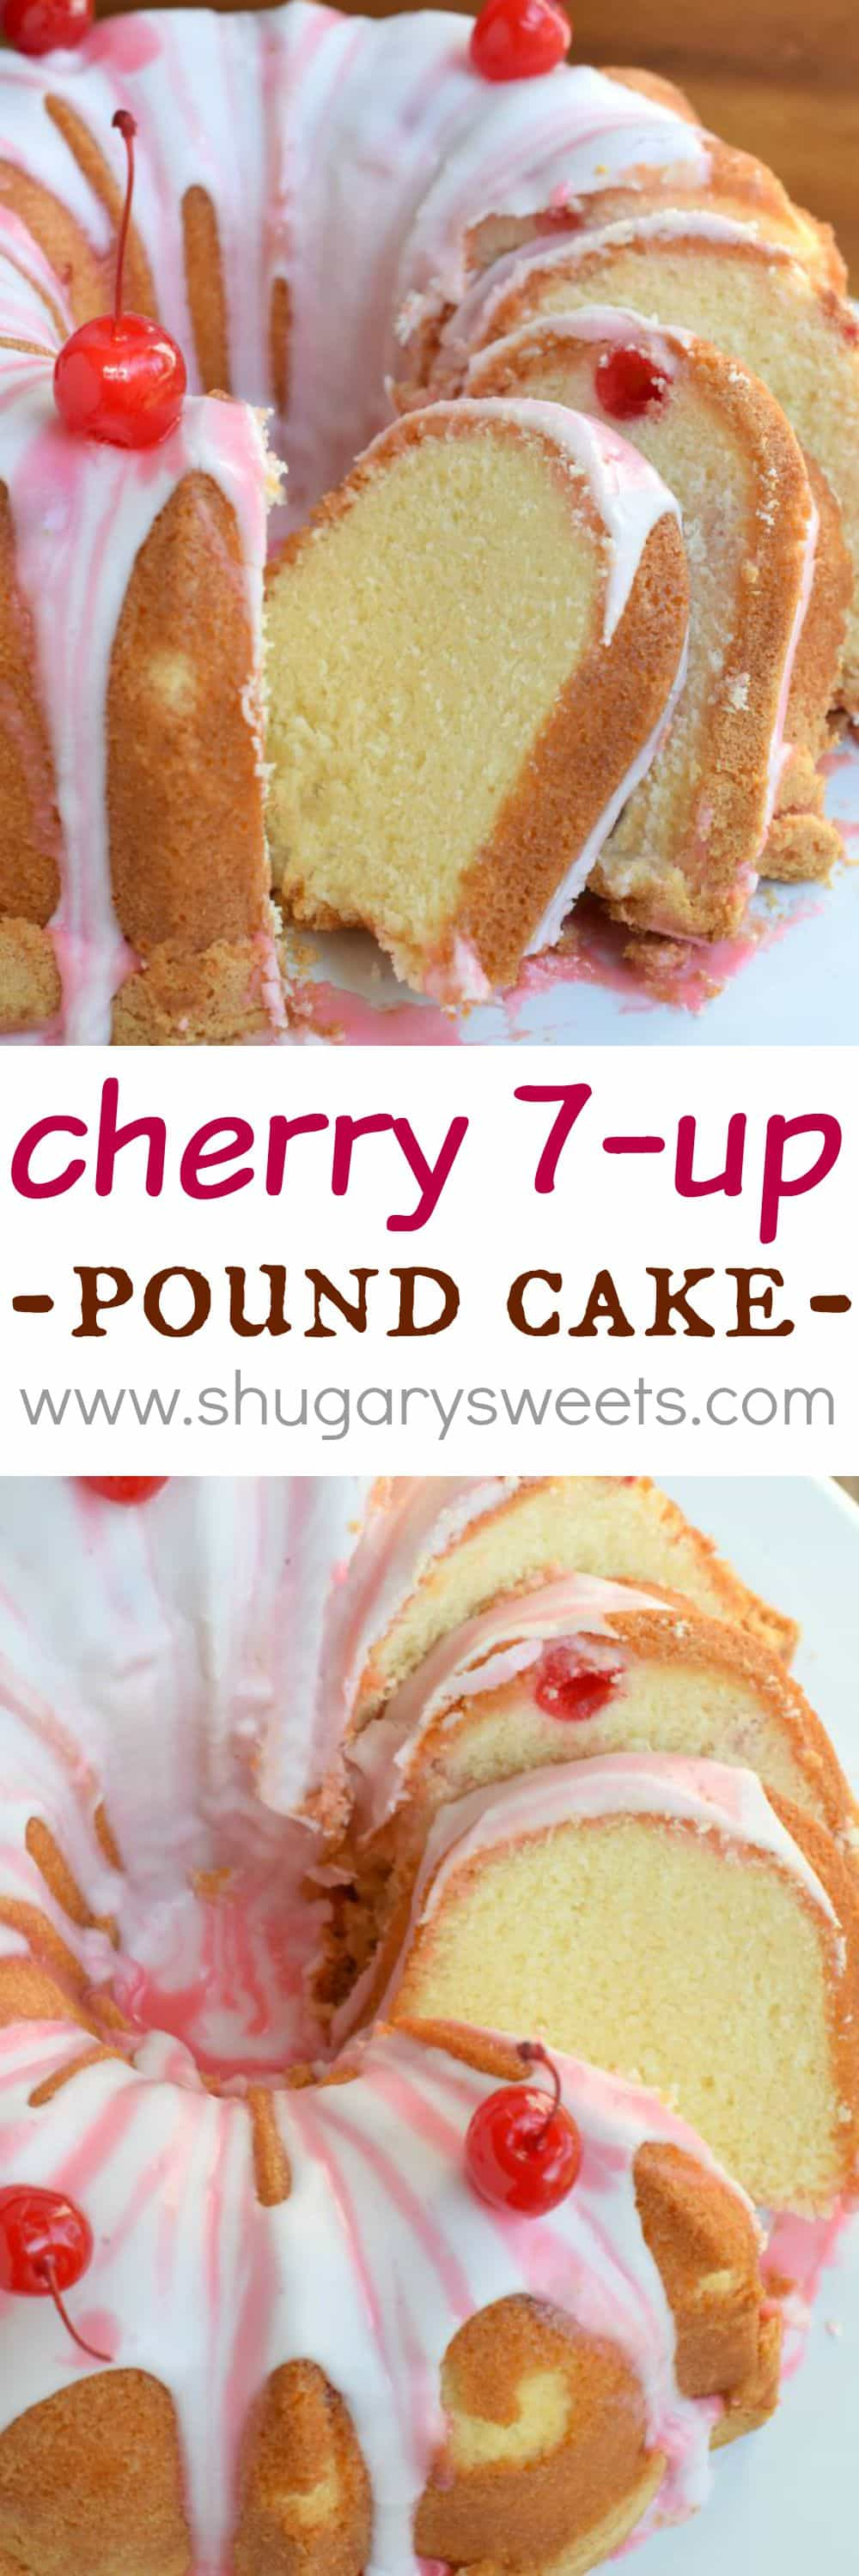 Cherry 7 Up Cupcakes Related Keywords & Suggestions - Cherry 7 Up ...